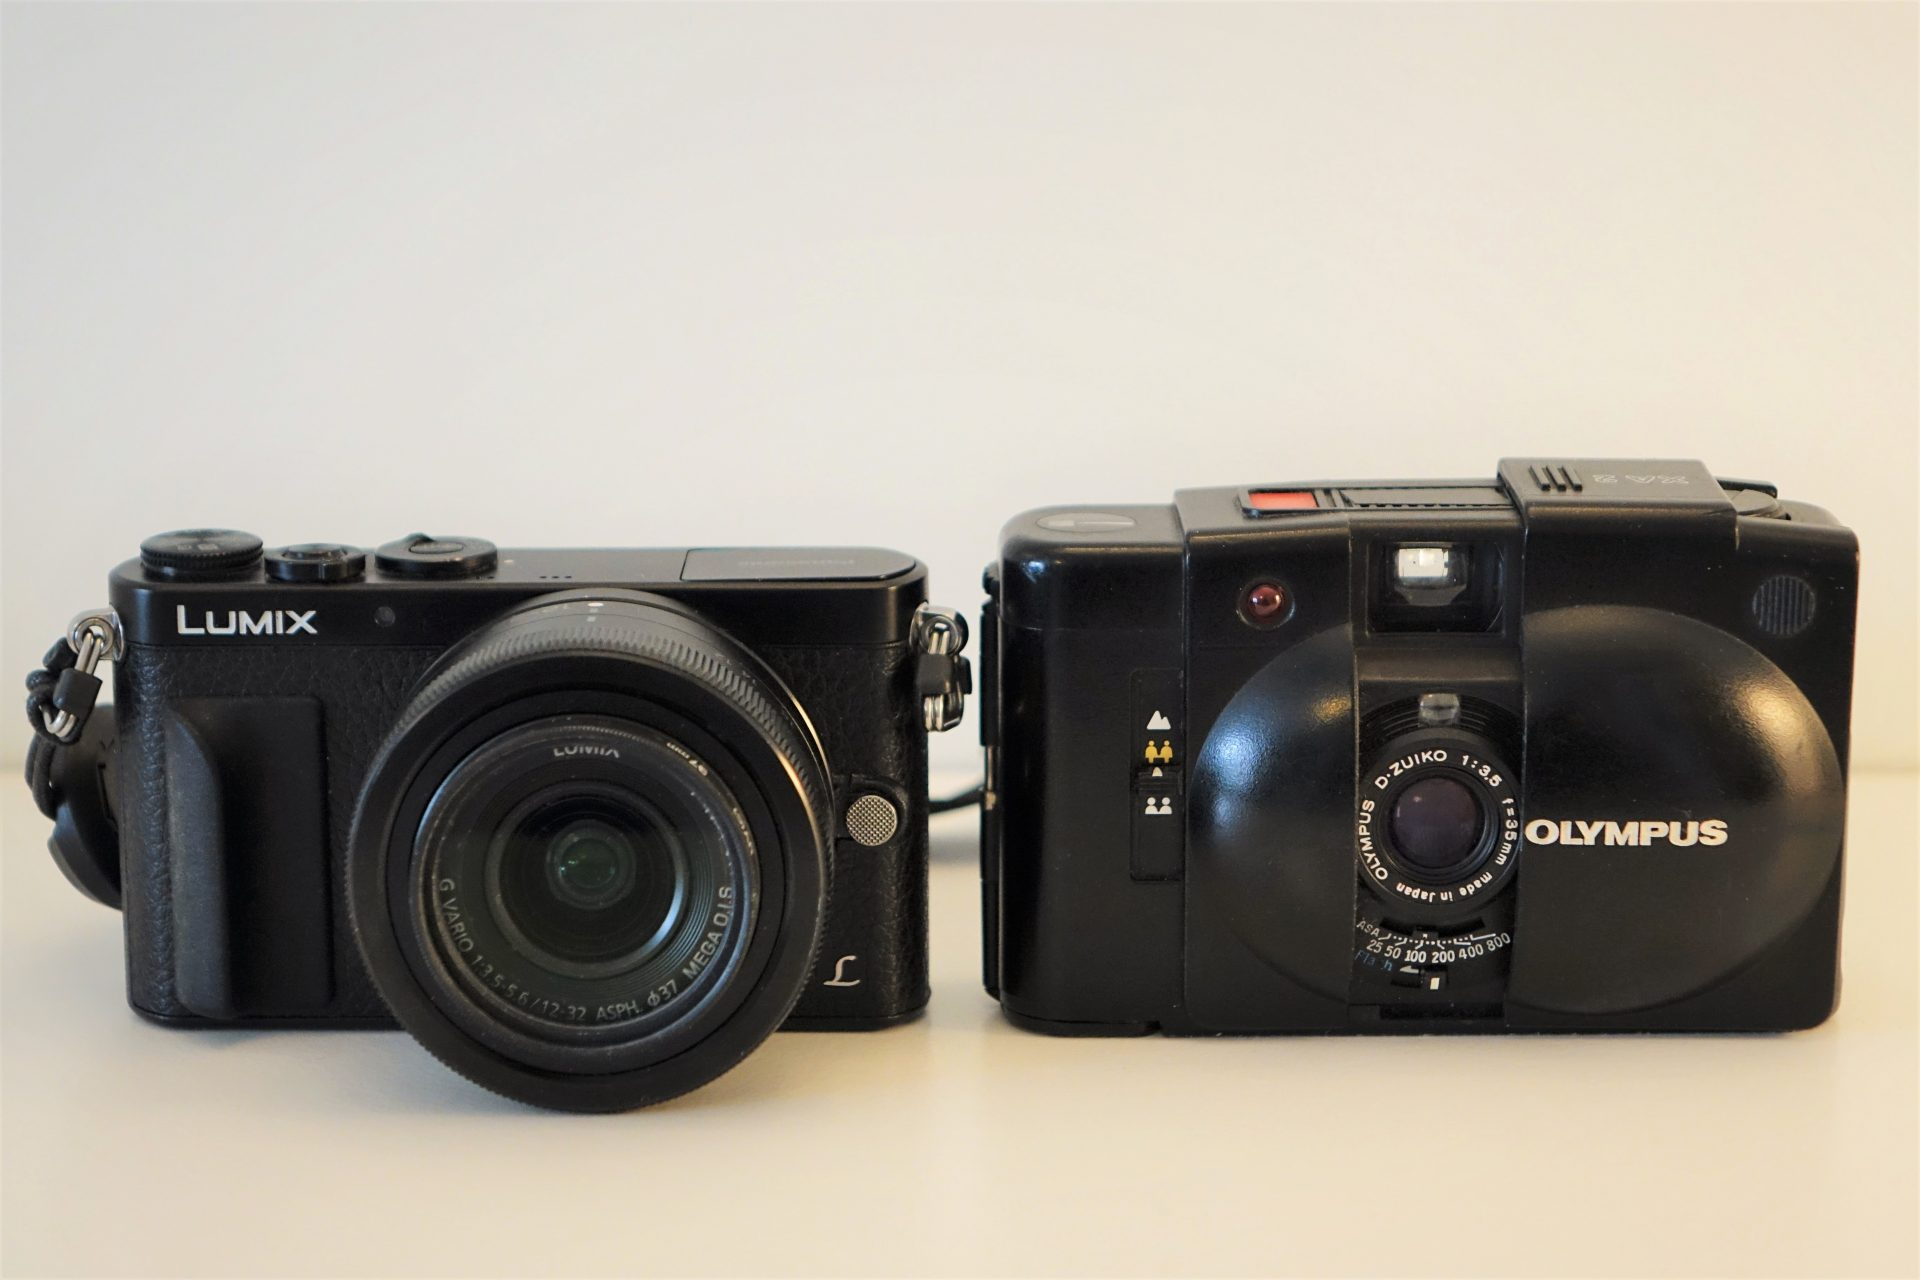 Panasonic GM1 and Olympus XA2